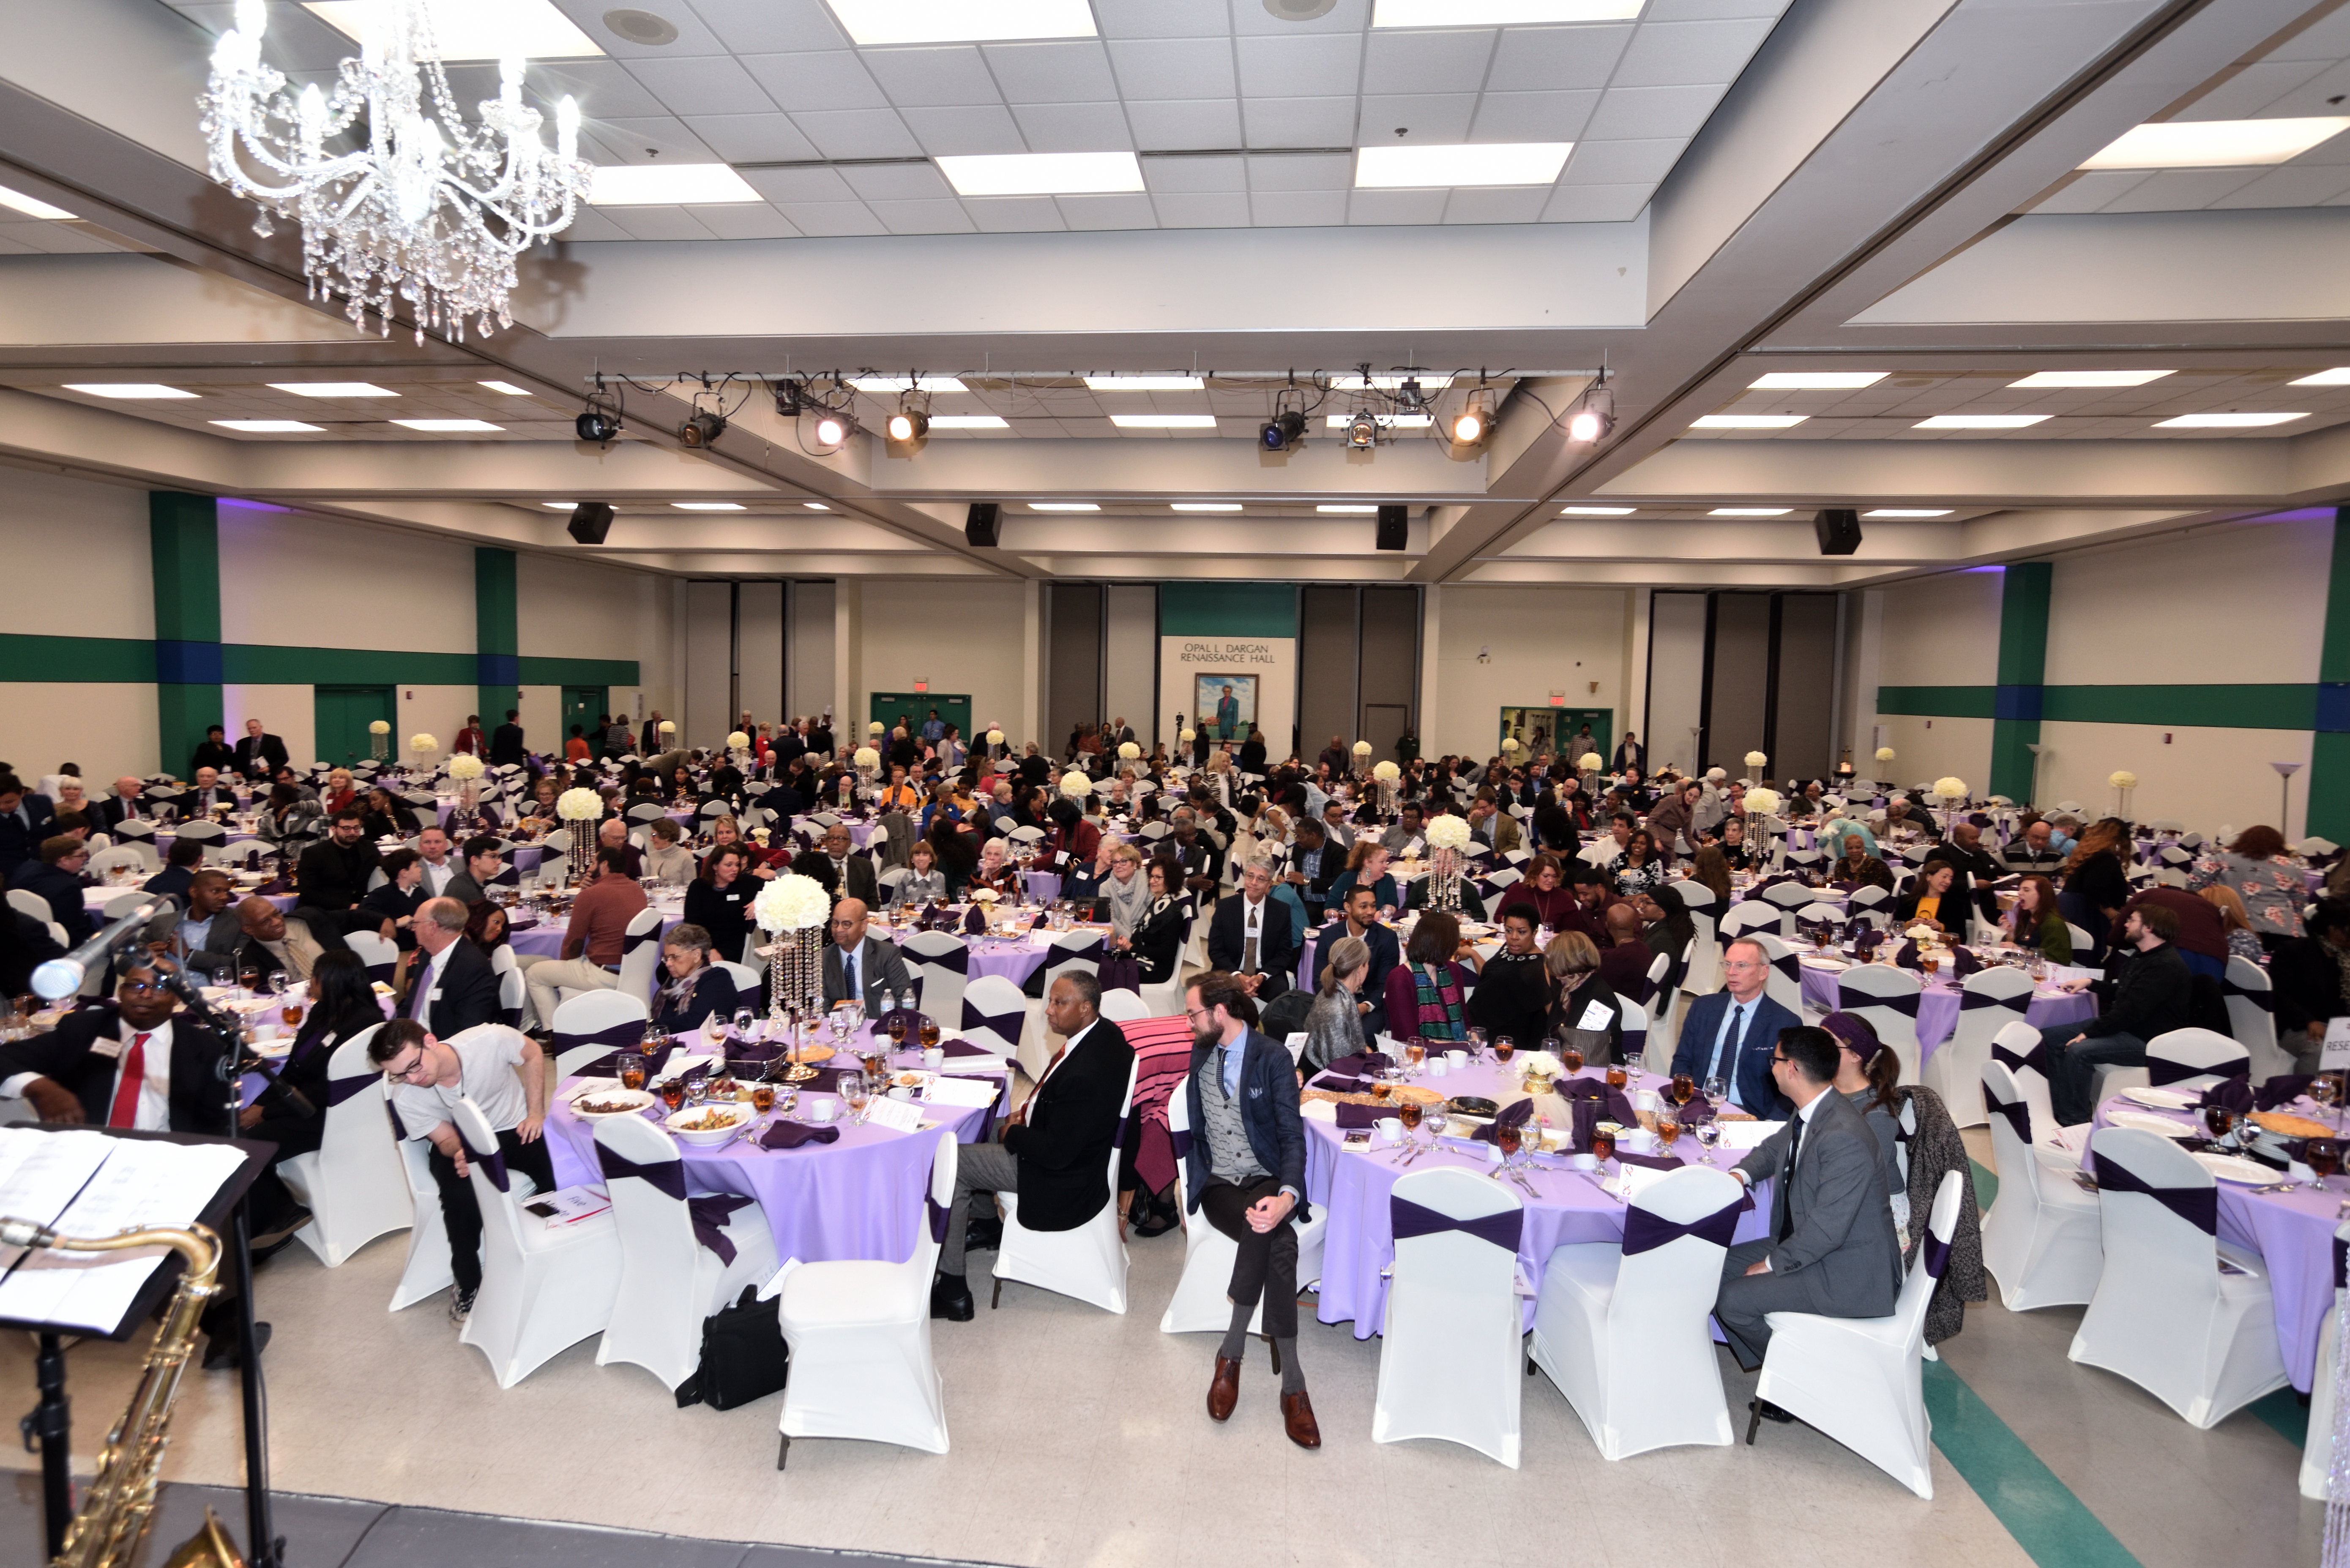 2018 Dinner of Reconciliation